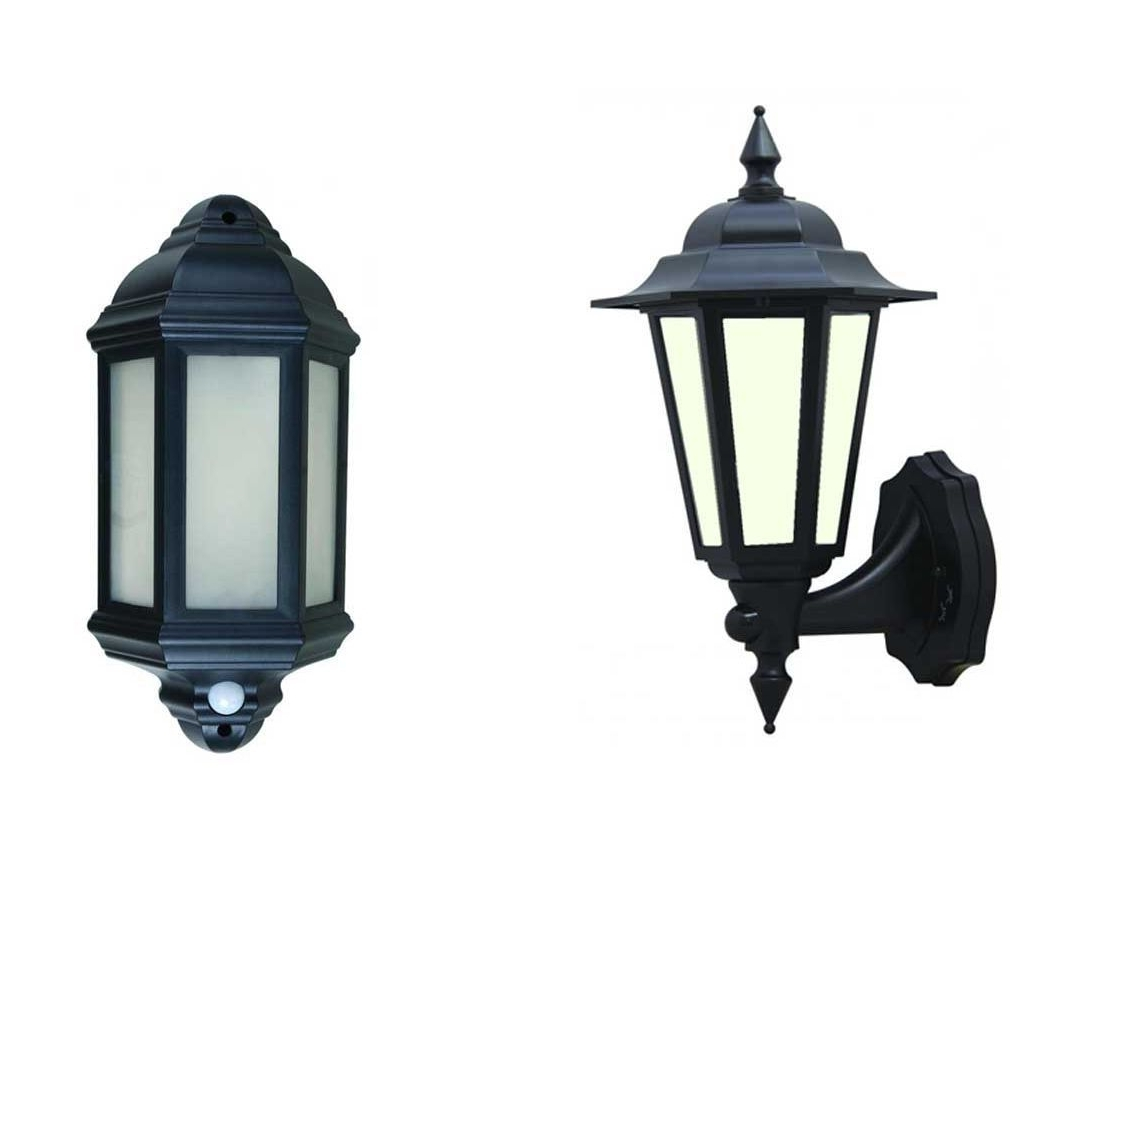 60W Traditional Black Half Lantern Outdoor Garden Wall Light With With 2018 Half Lantern Outside Wall Lights (View 1 of 20)